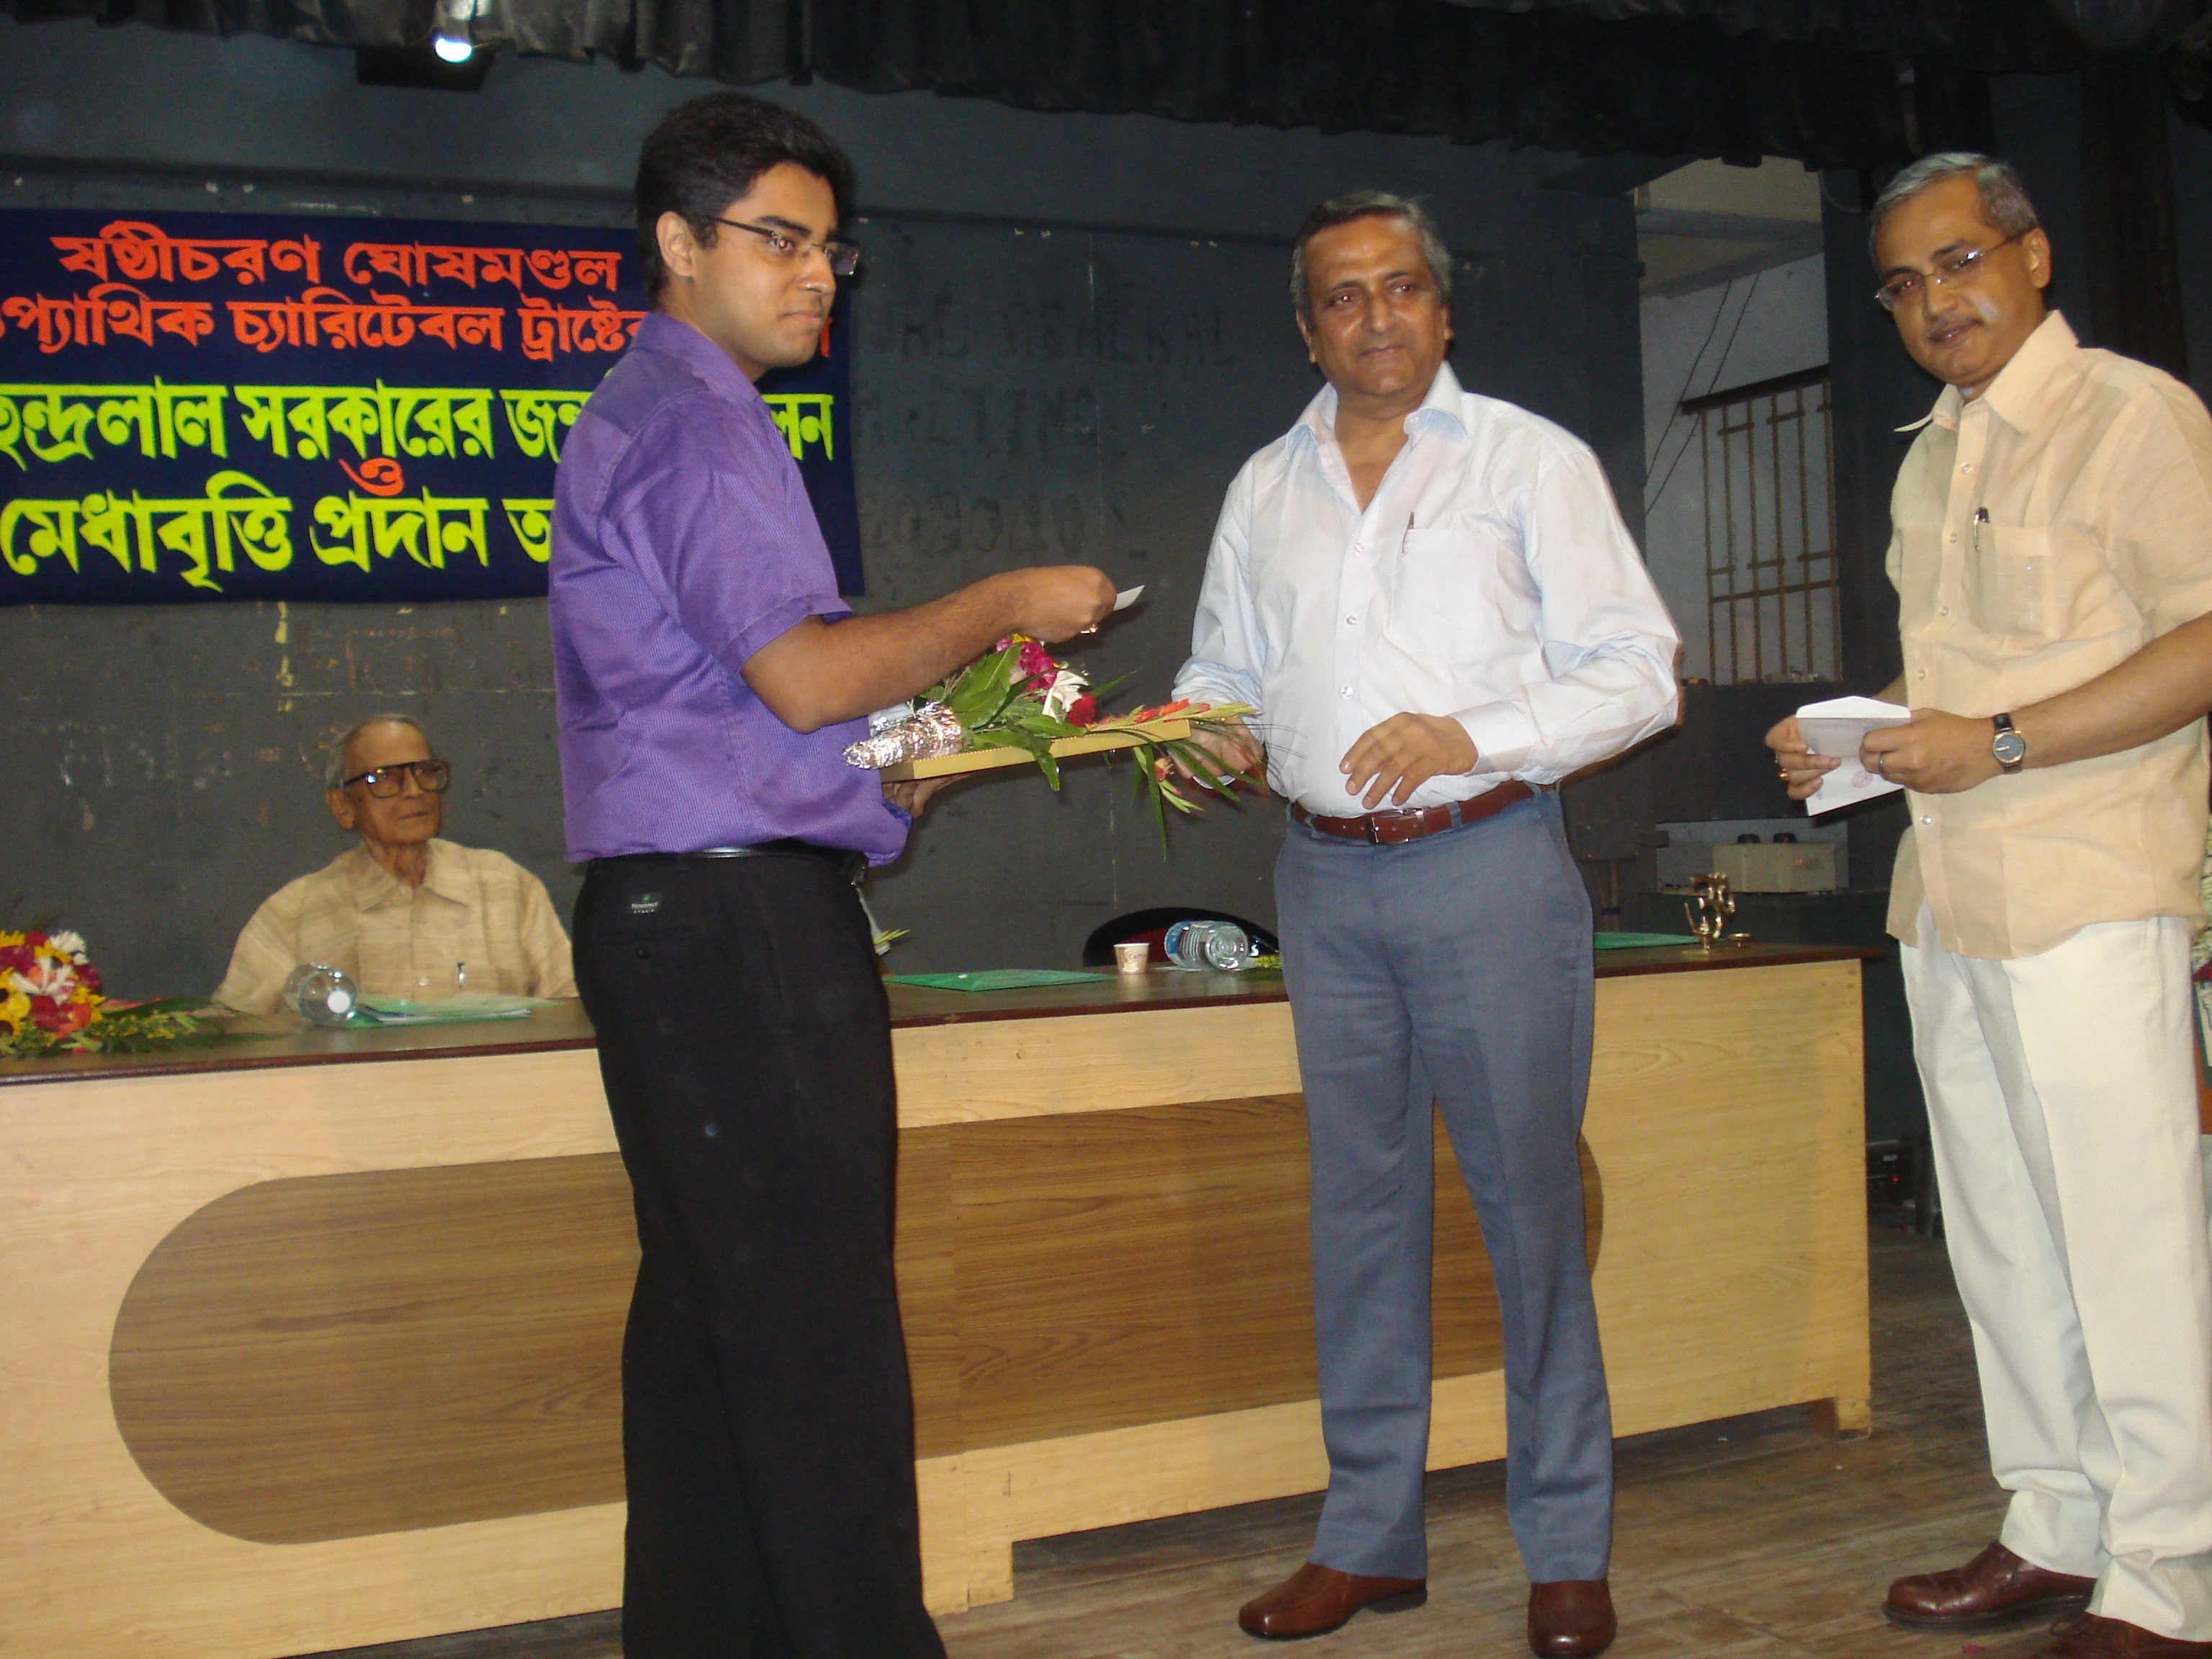 Dr.Saptarshi being honoured with the S.C.G.M Award for 1st position in the University.